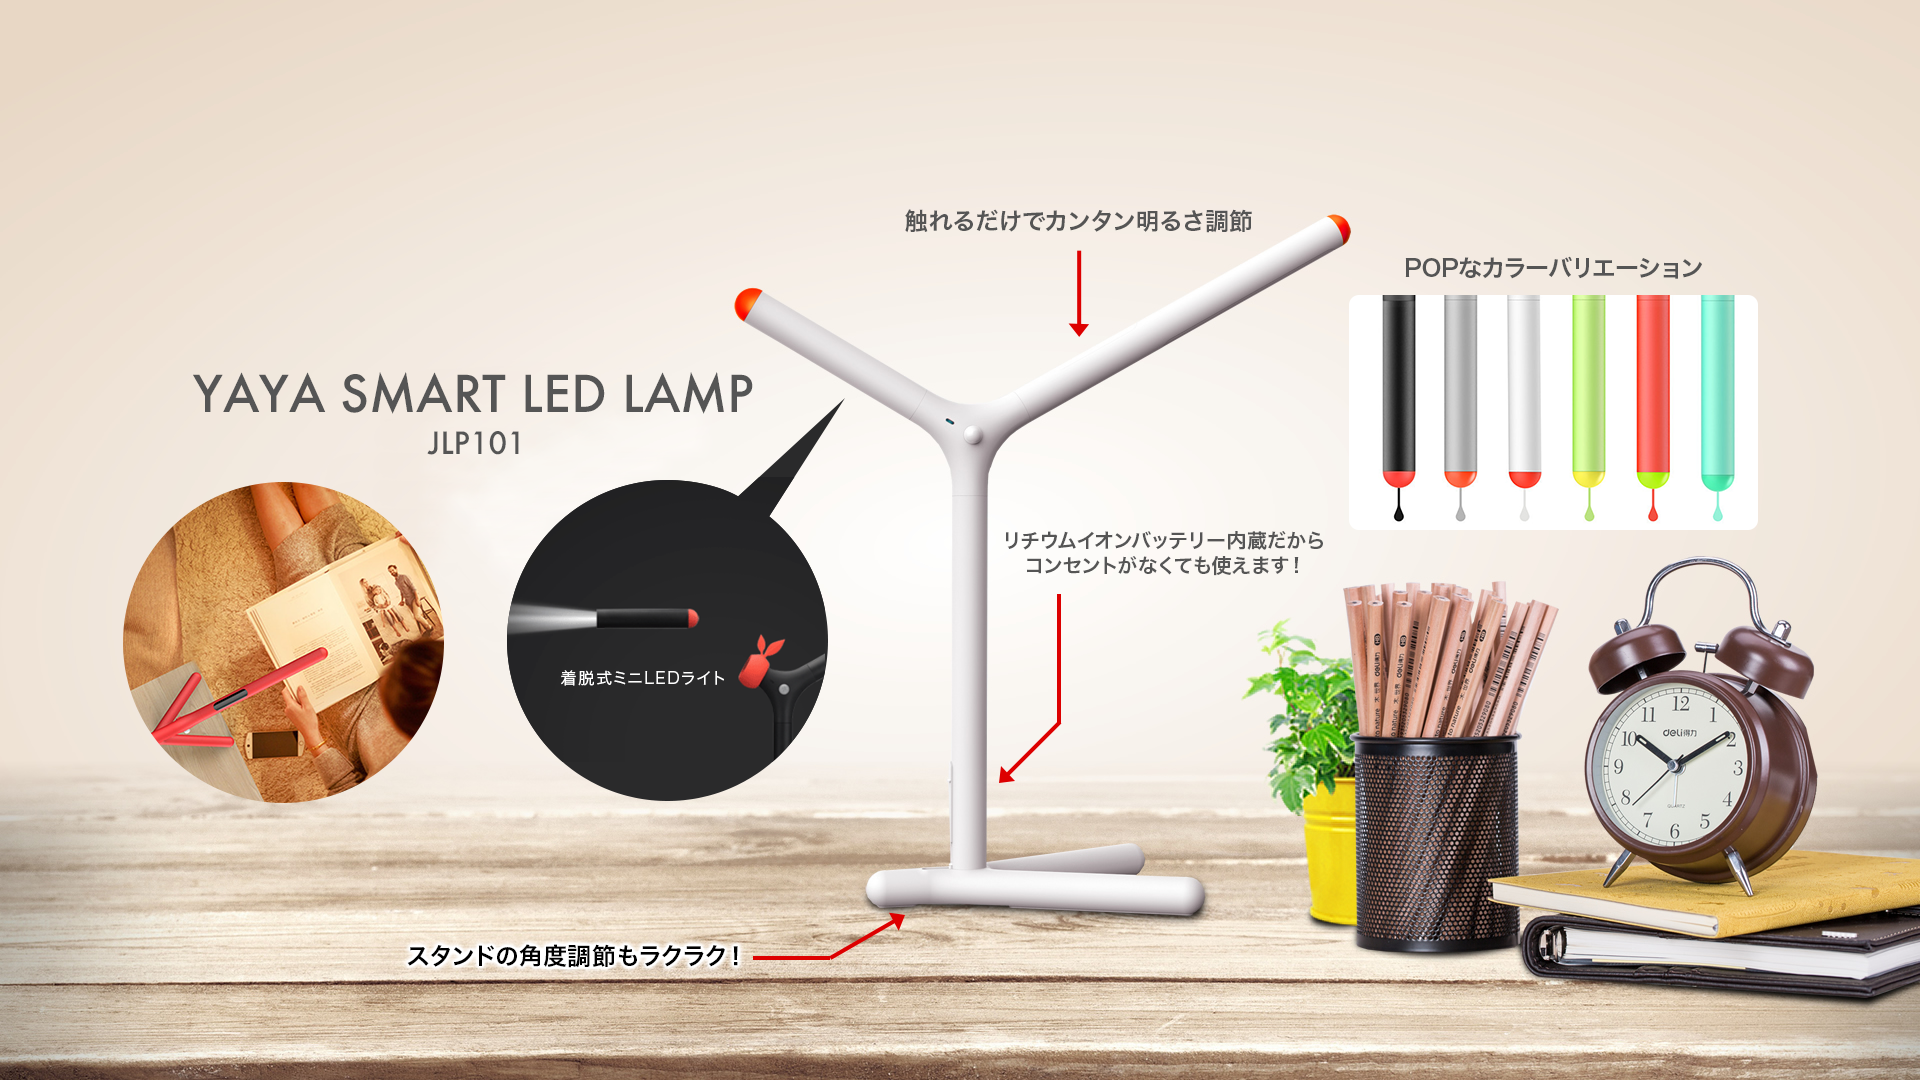 YAYA smart LED LAMP